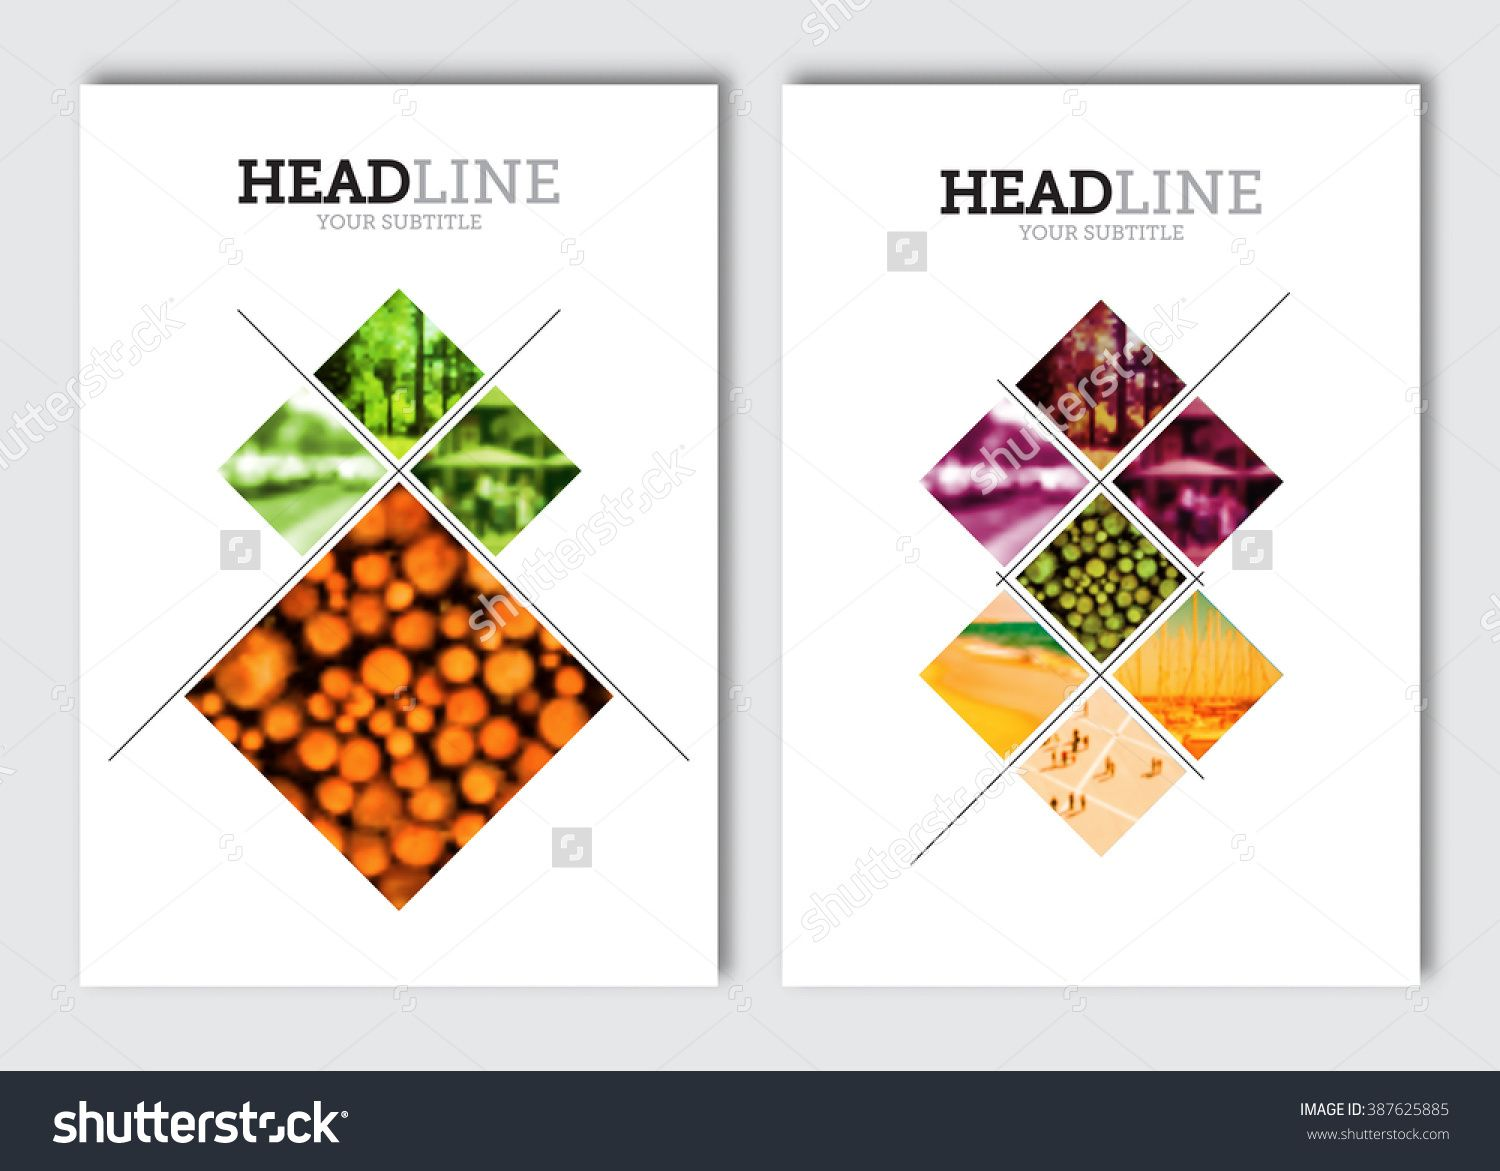 business brochure design template vector flyer layout blur background with elements for magazine cover poster design a4 size